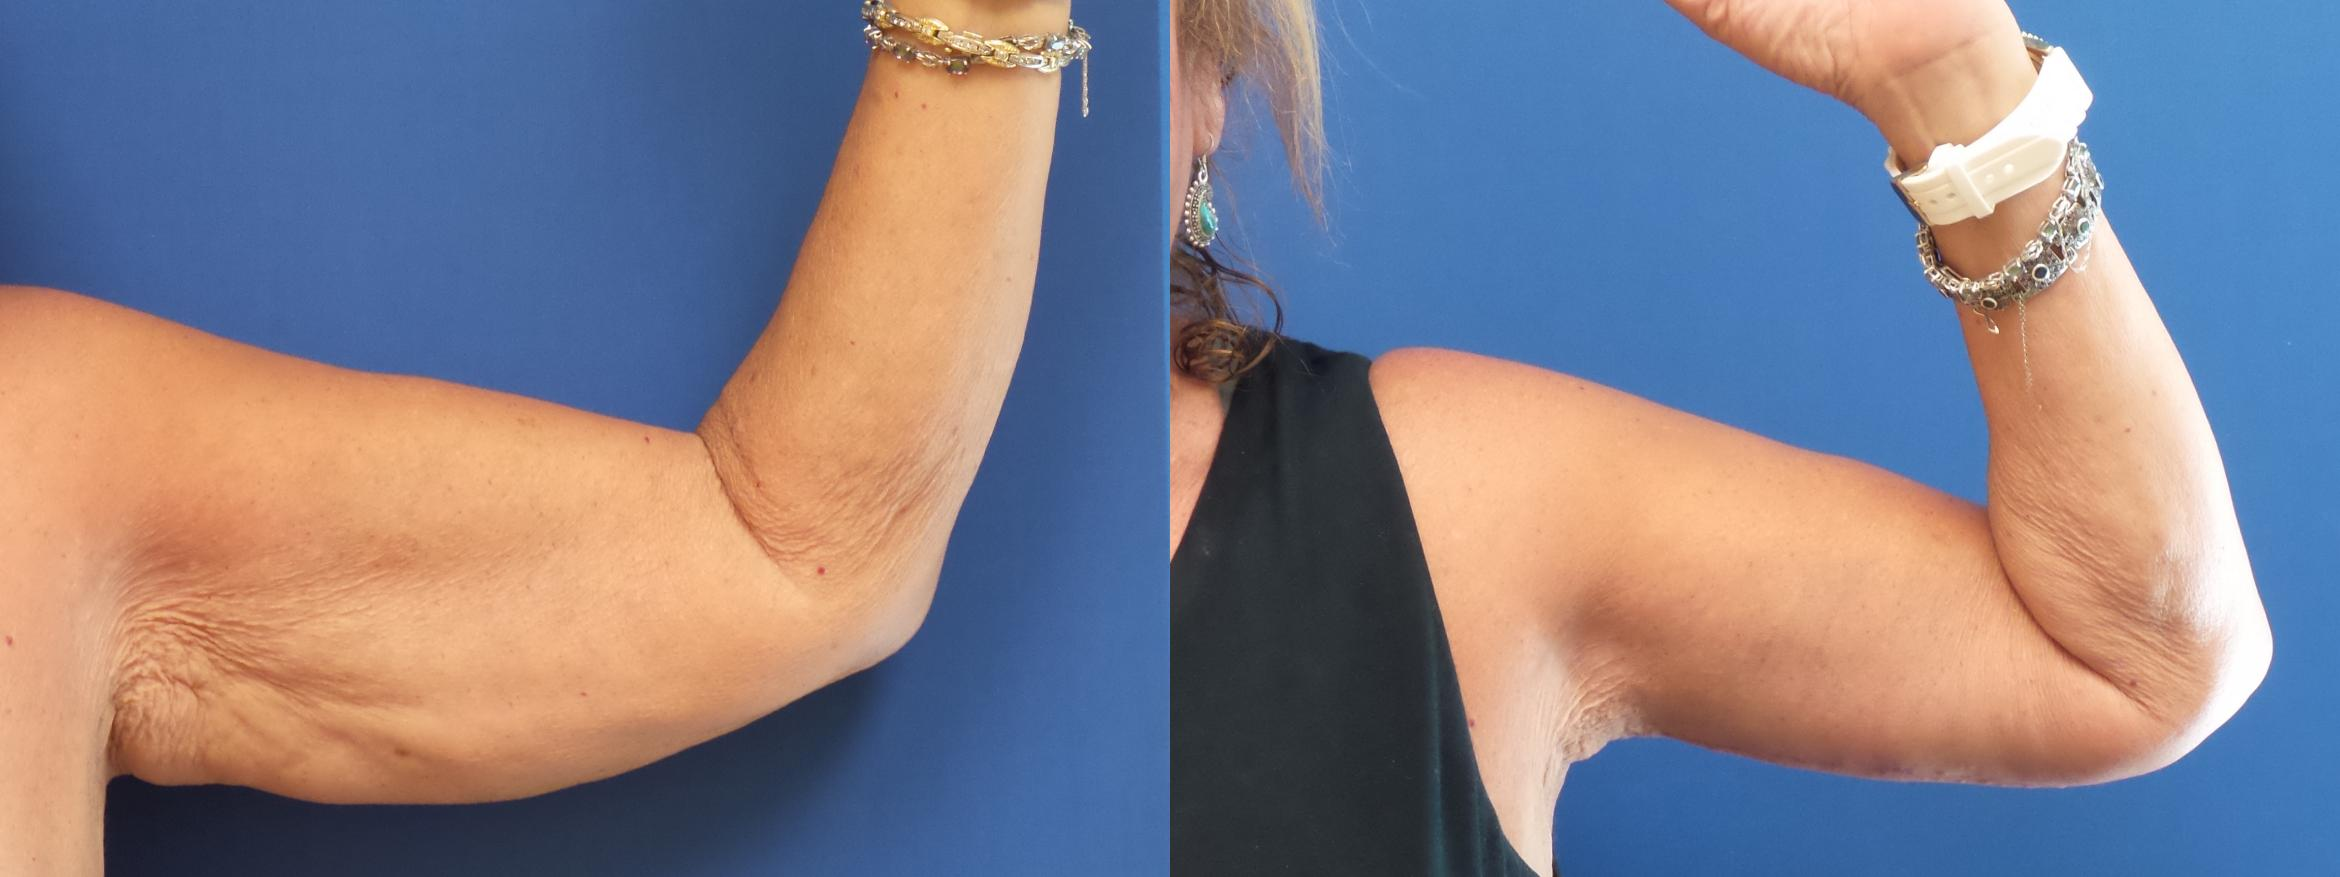 Arm Lift Case 171 Before & After View #1 | Webster, TX | Houston Plastic and Reconstructive Surgery